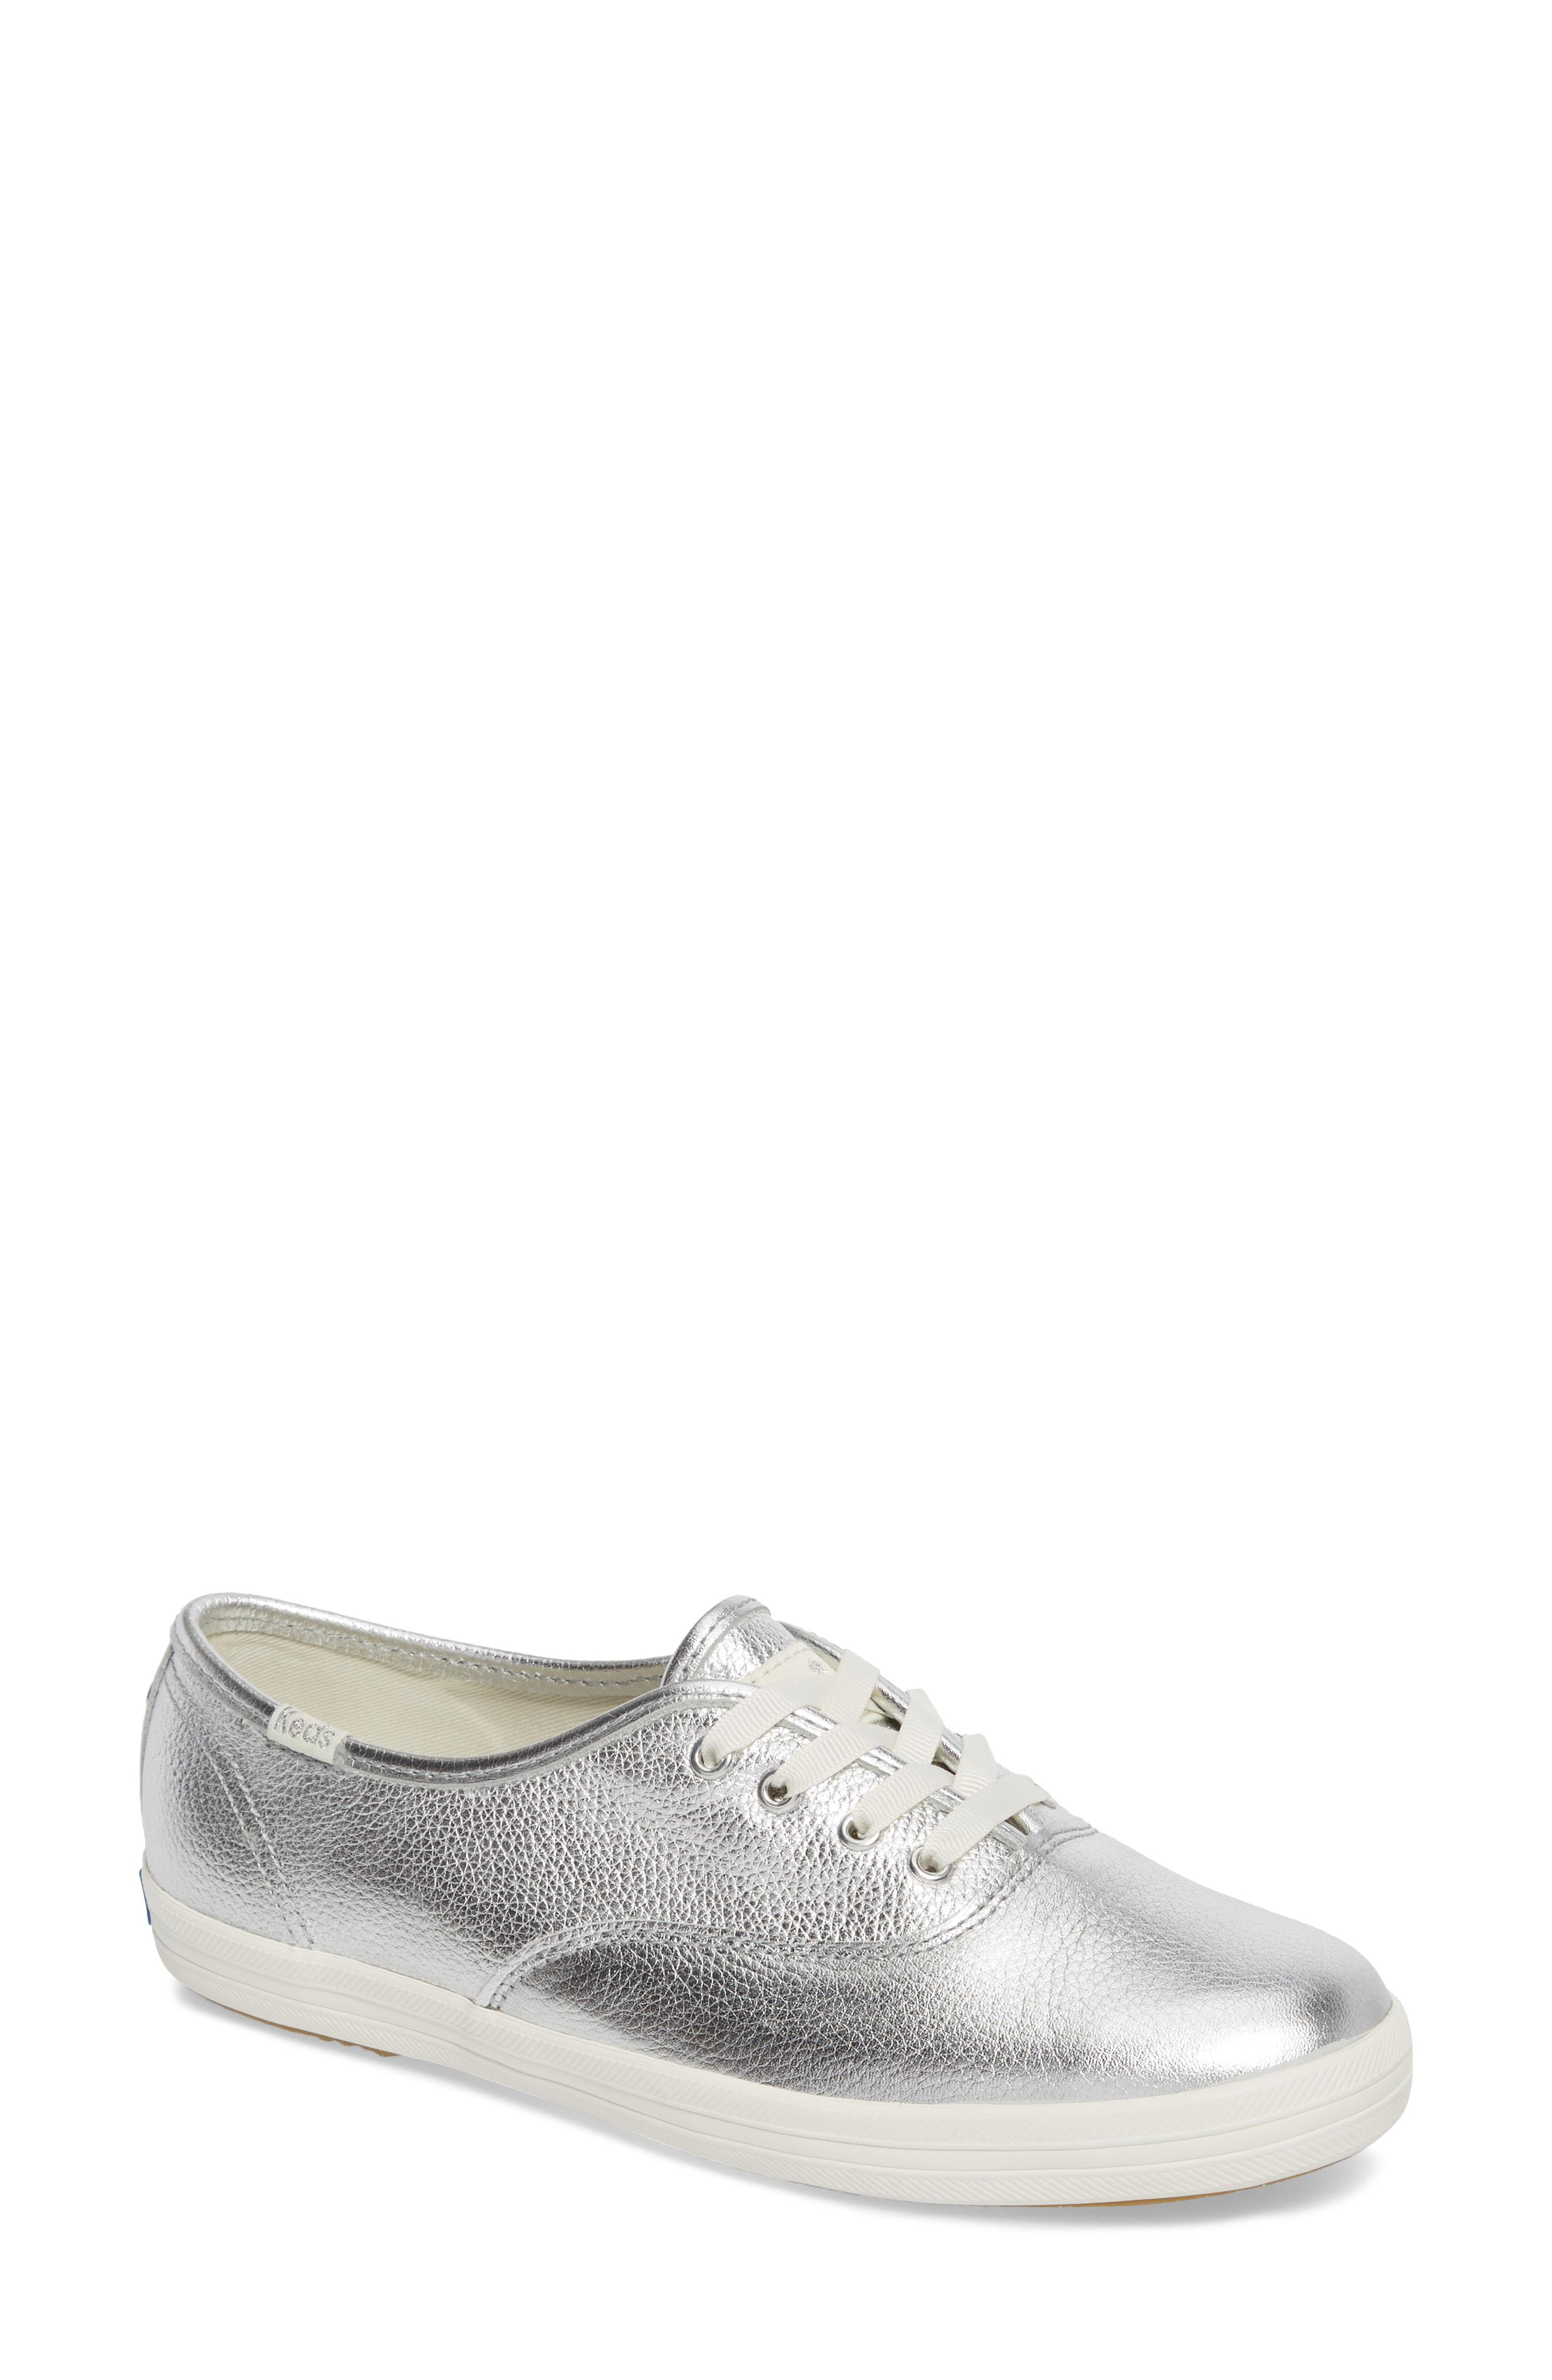 efd1011f78e4 Lyst - Kate Spade Keds For Kate Spade New York Metallic Sneaker in ...